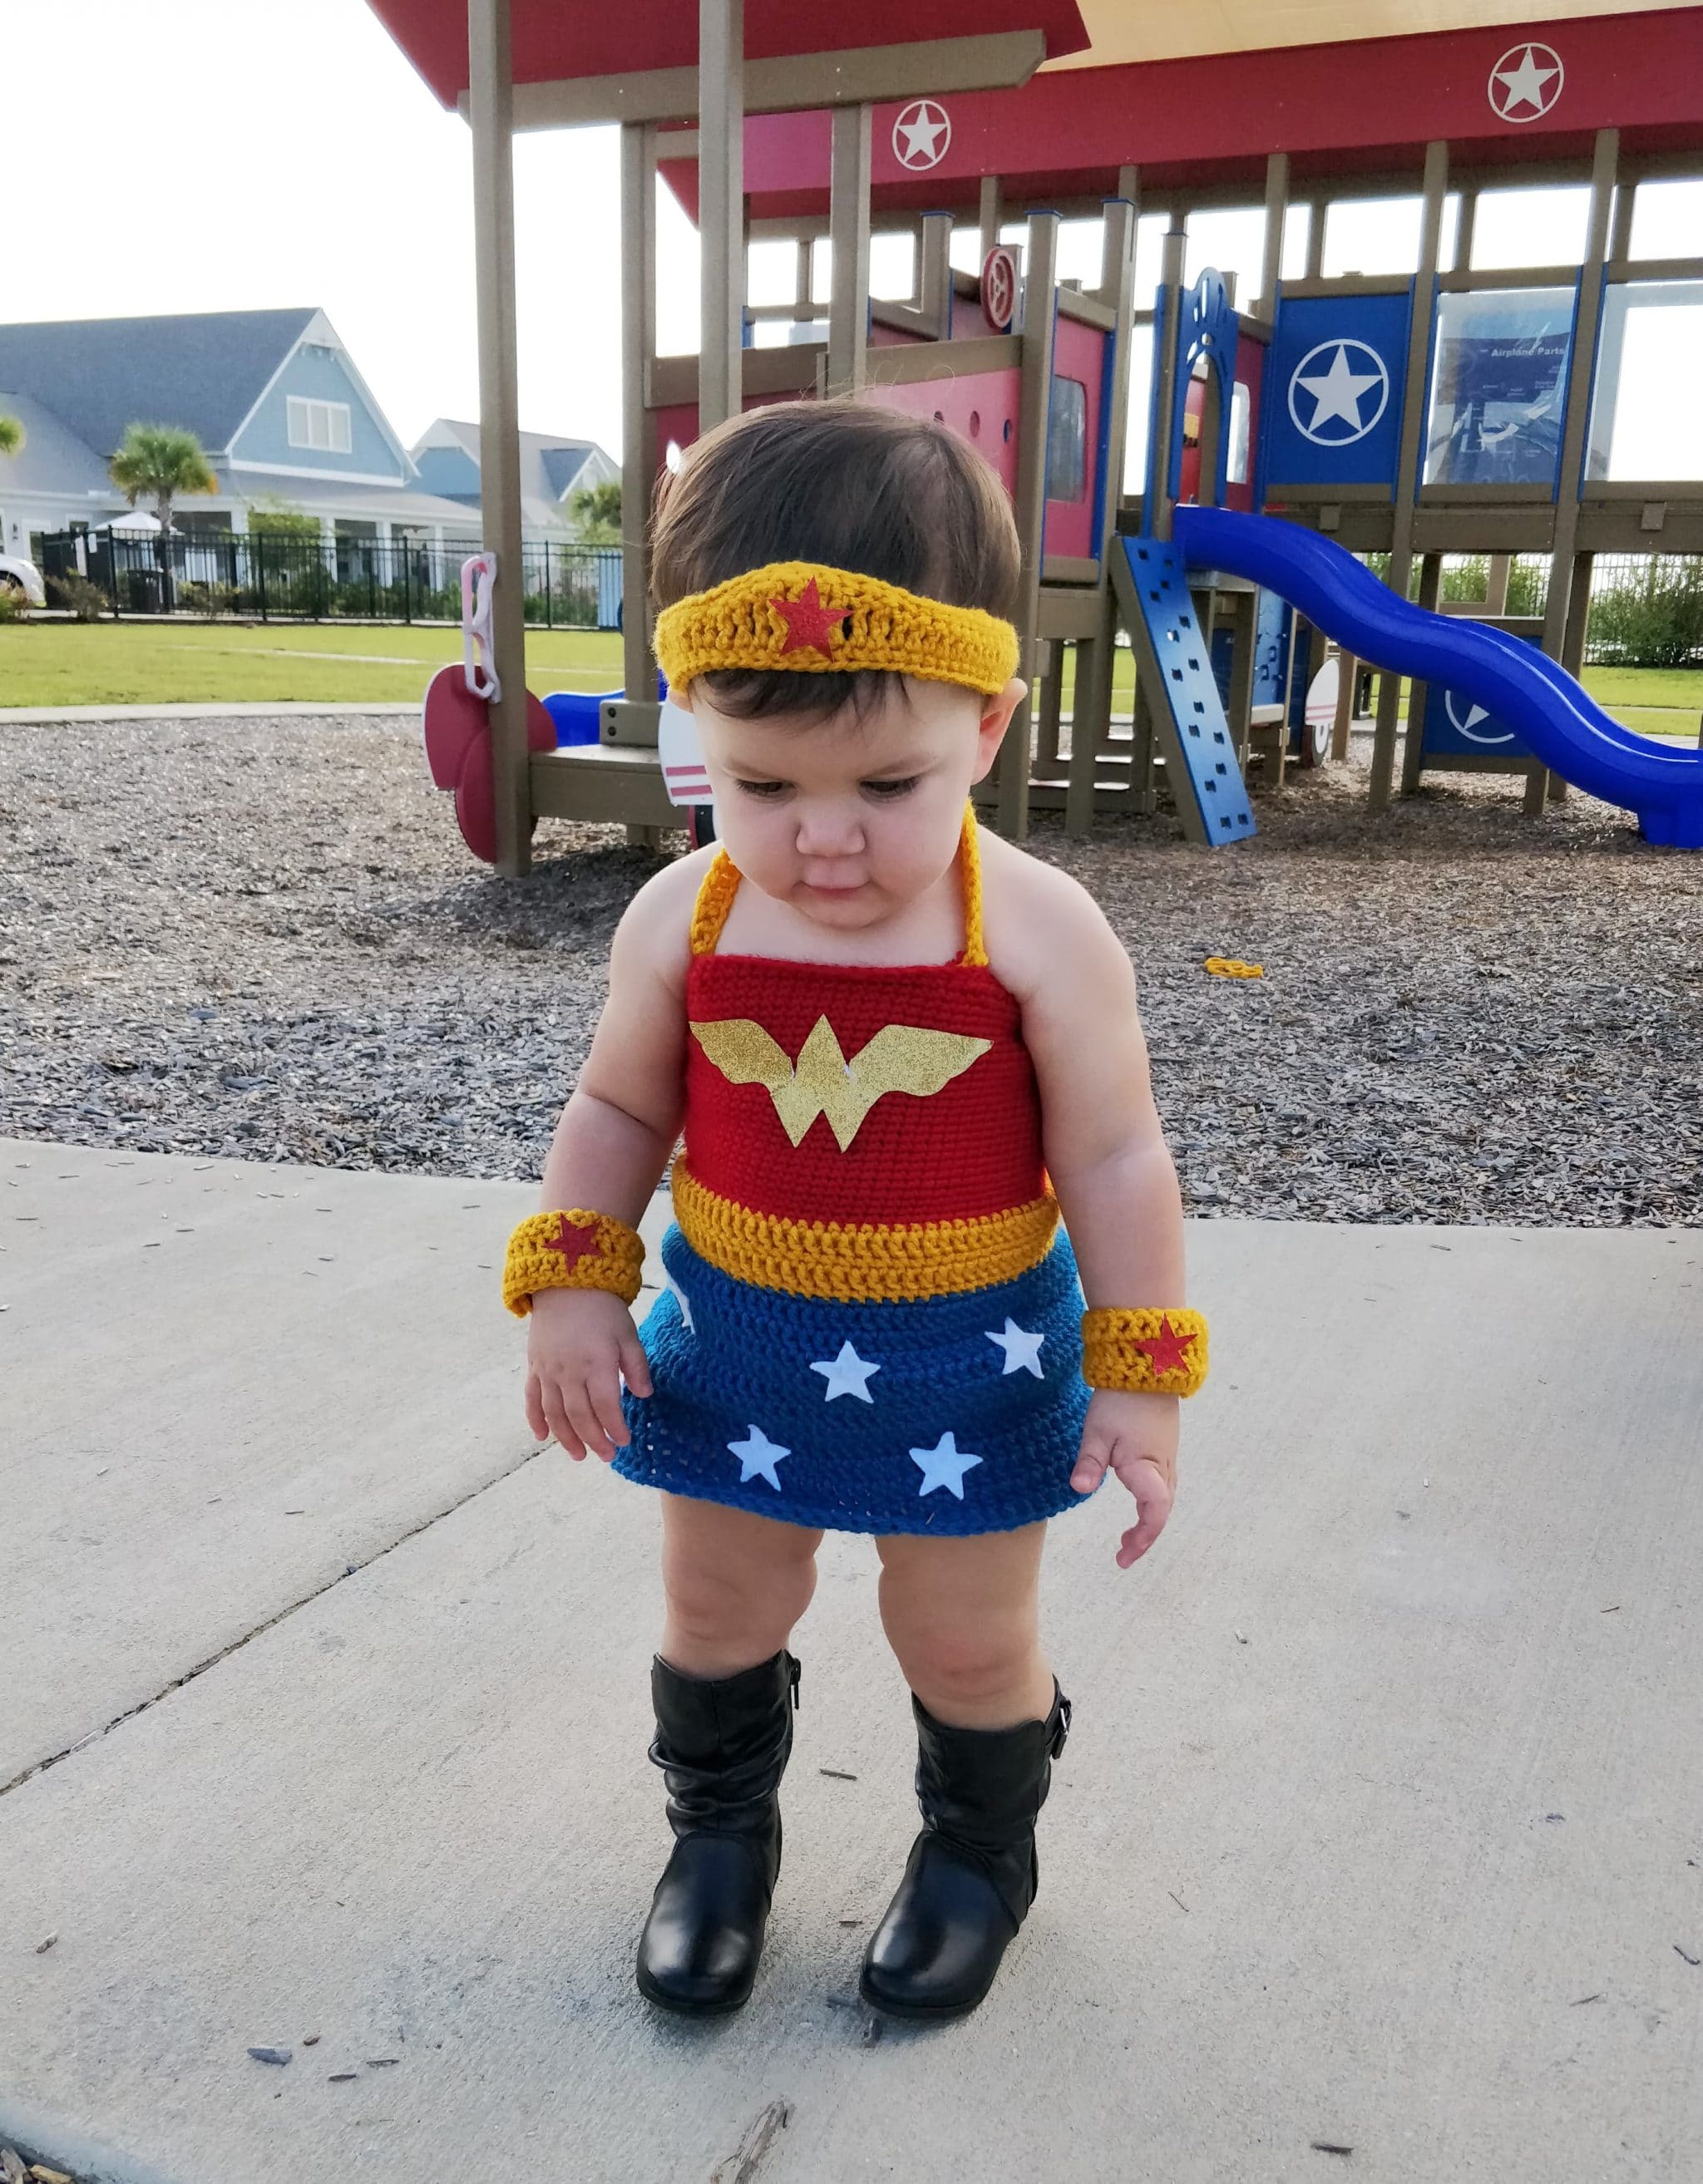 Little girl in black boots wearing wonder woman crochet outfit at the playground